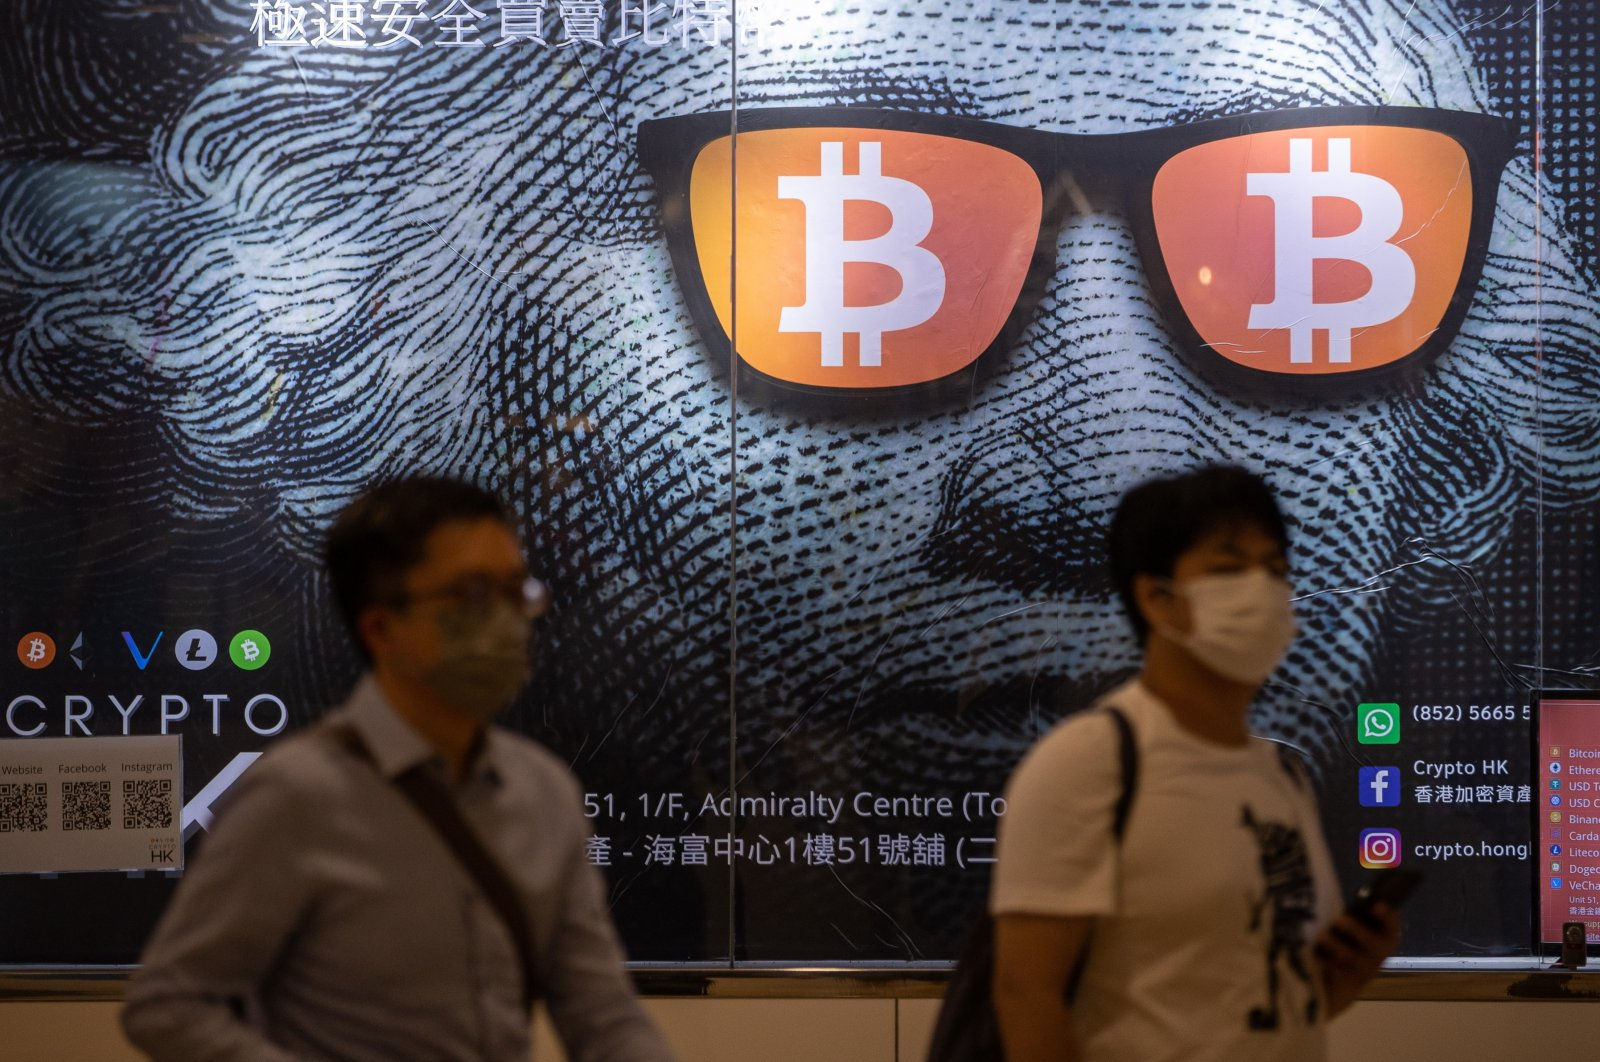 Two men walk past an advertising poster for bitcoins and cryptocurrencies in Hong Kong, China, Sept. 25, 2021. (EPA Photo)